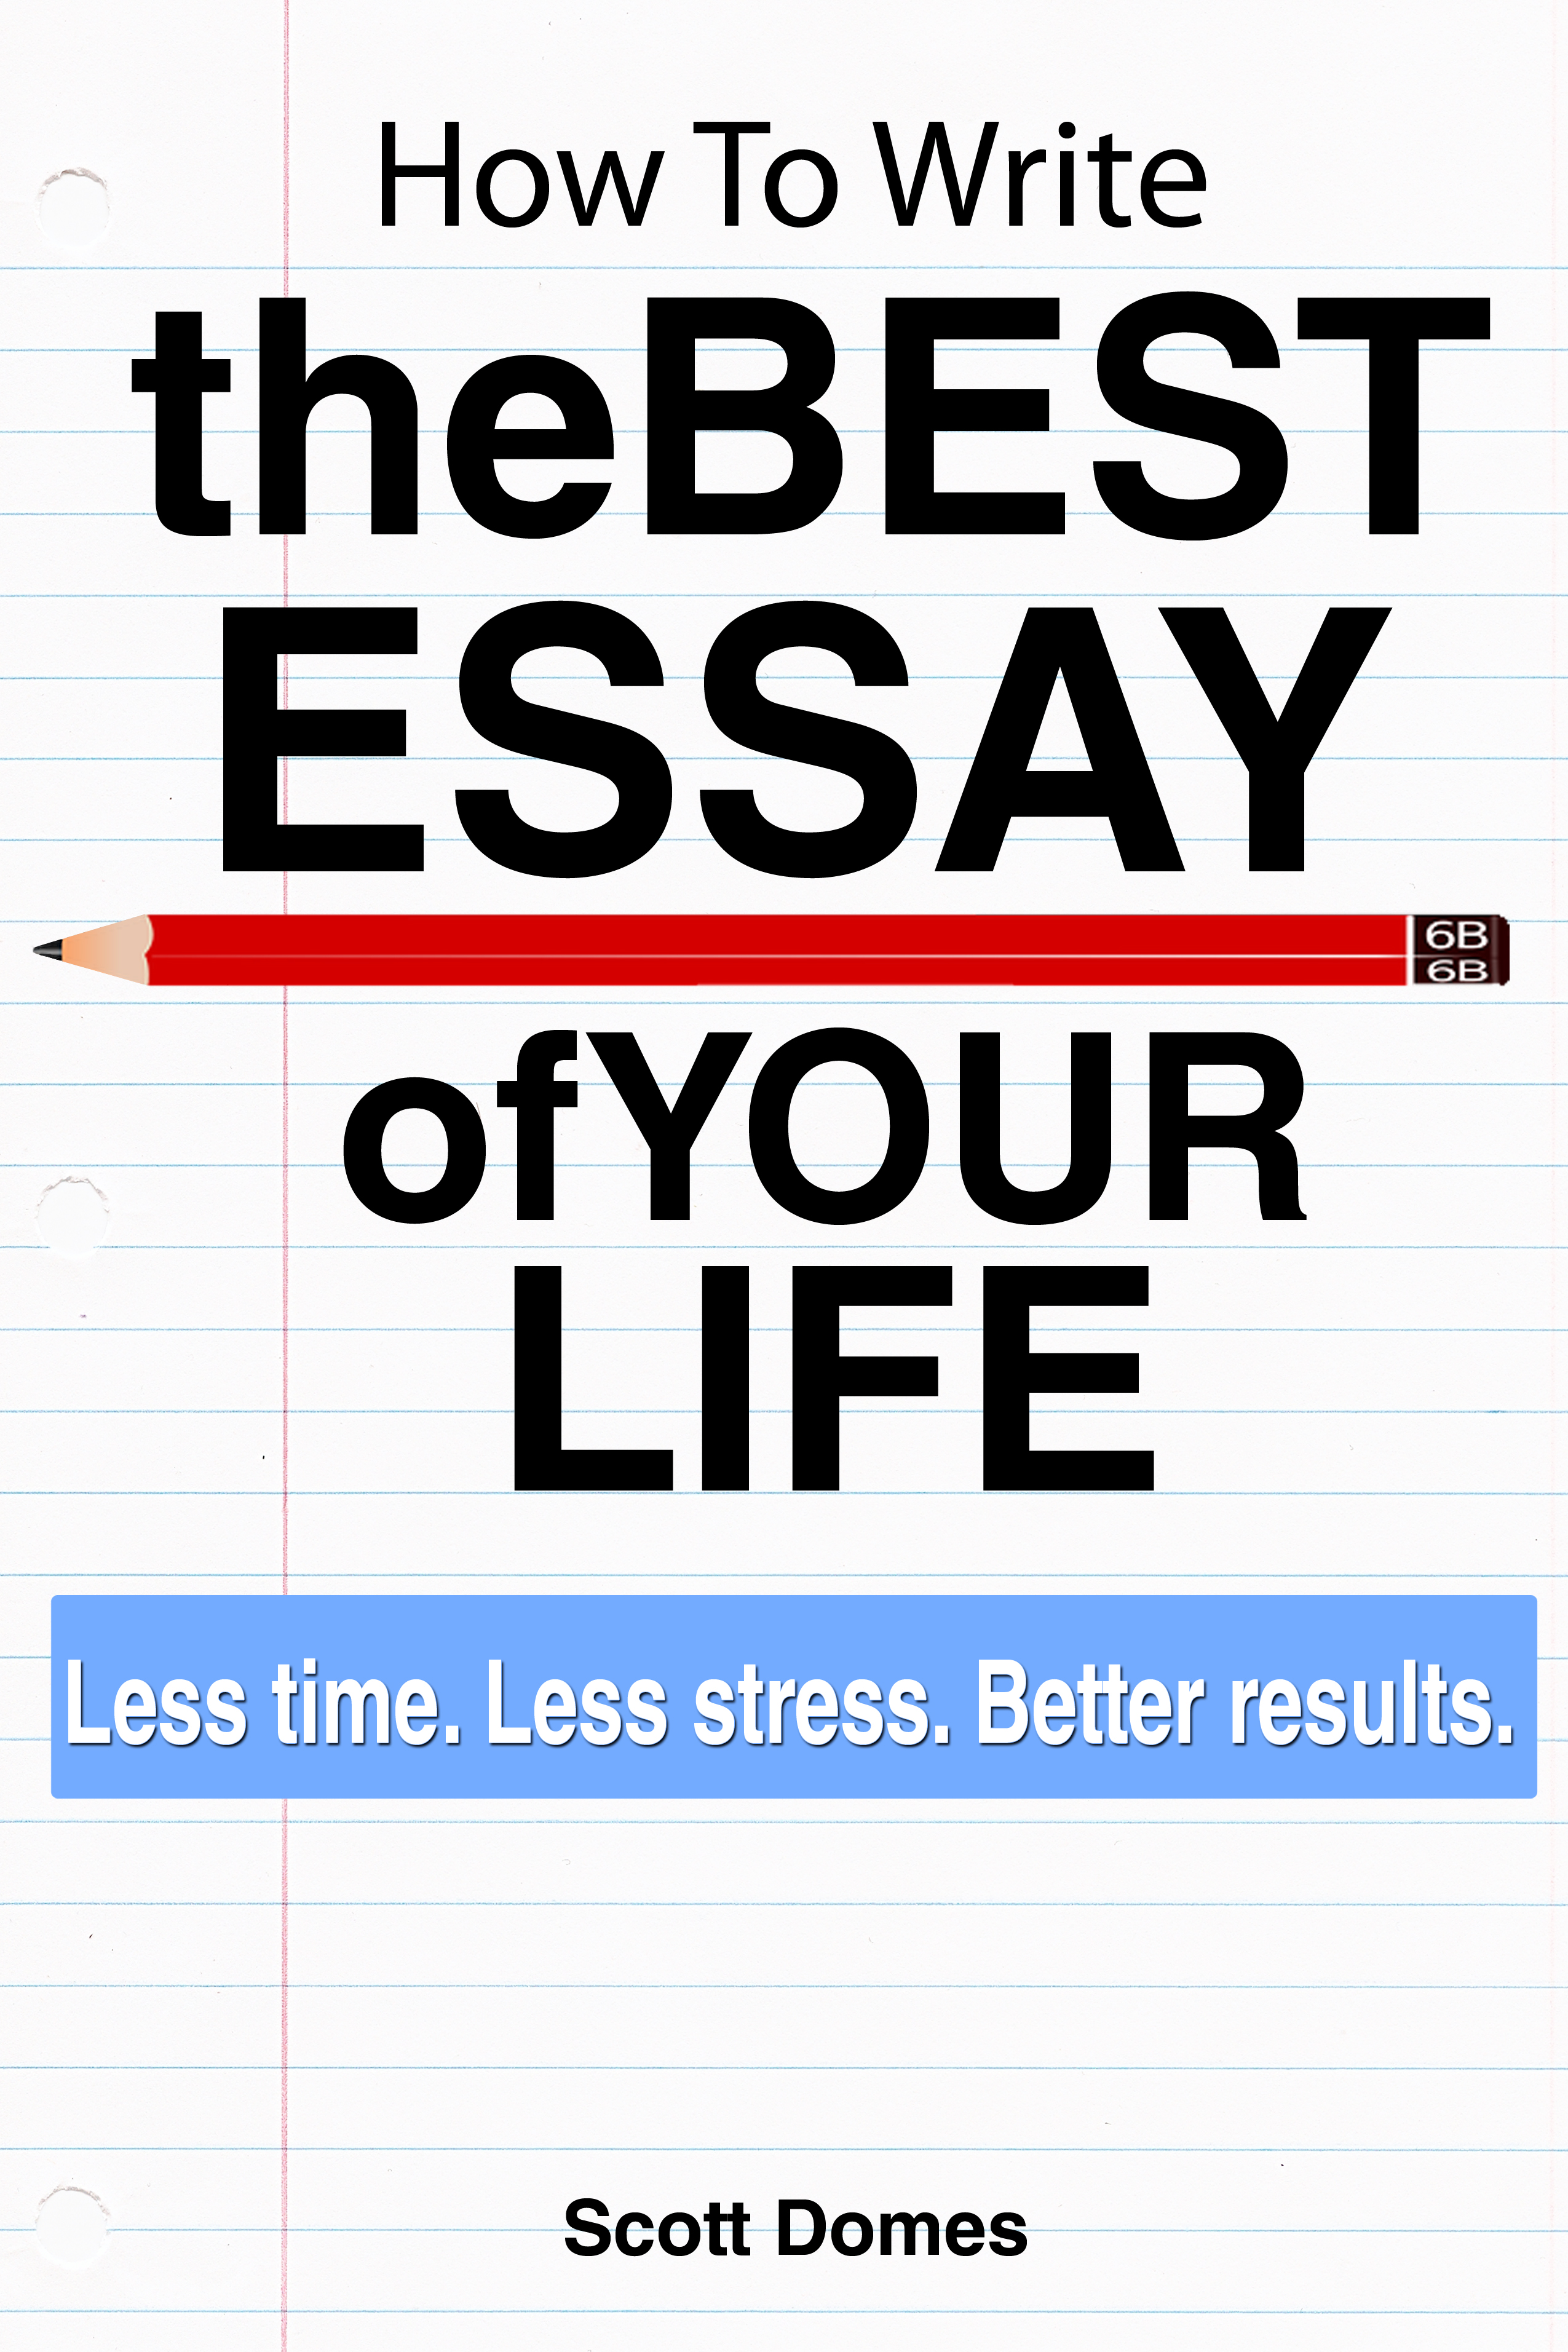 being your best essay The best college scholarships: 2018 edition essay tips: 7 tips on writing an effective essay essays can be crucial to admissions and scholarship decisions.